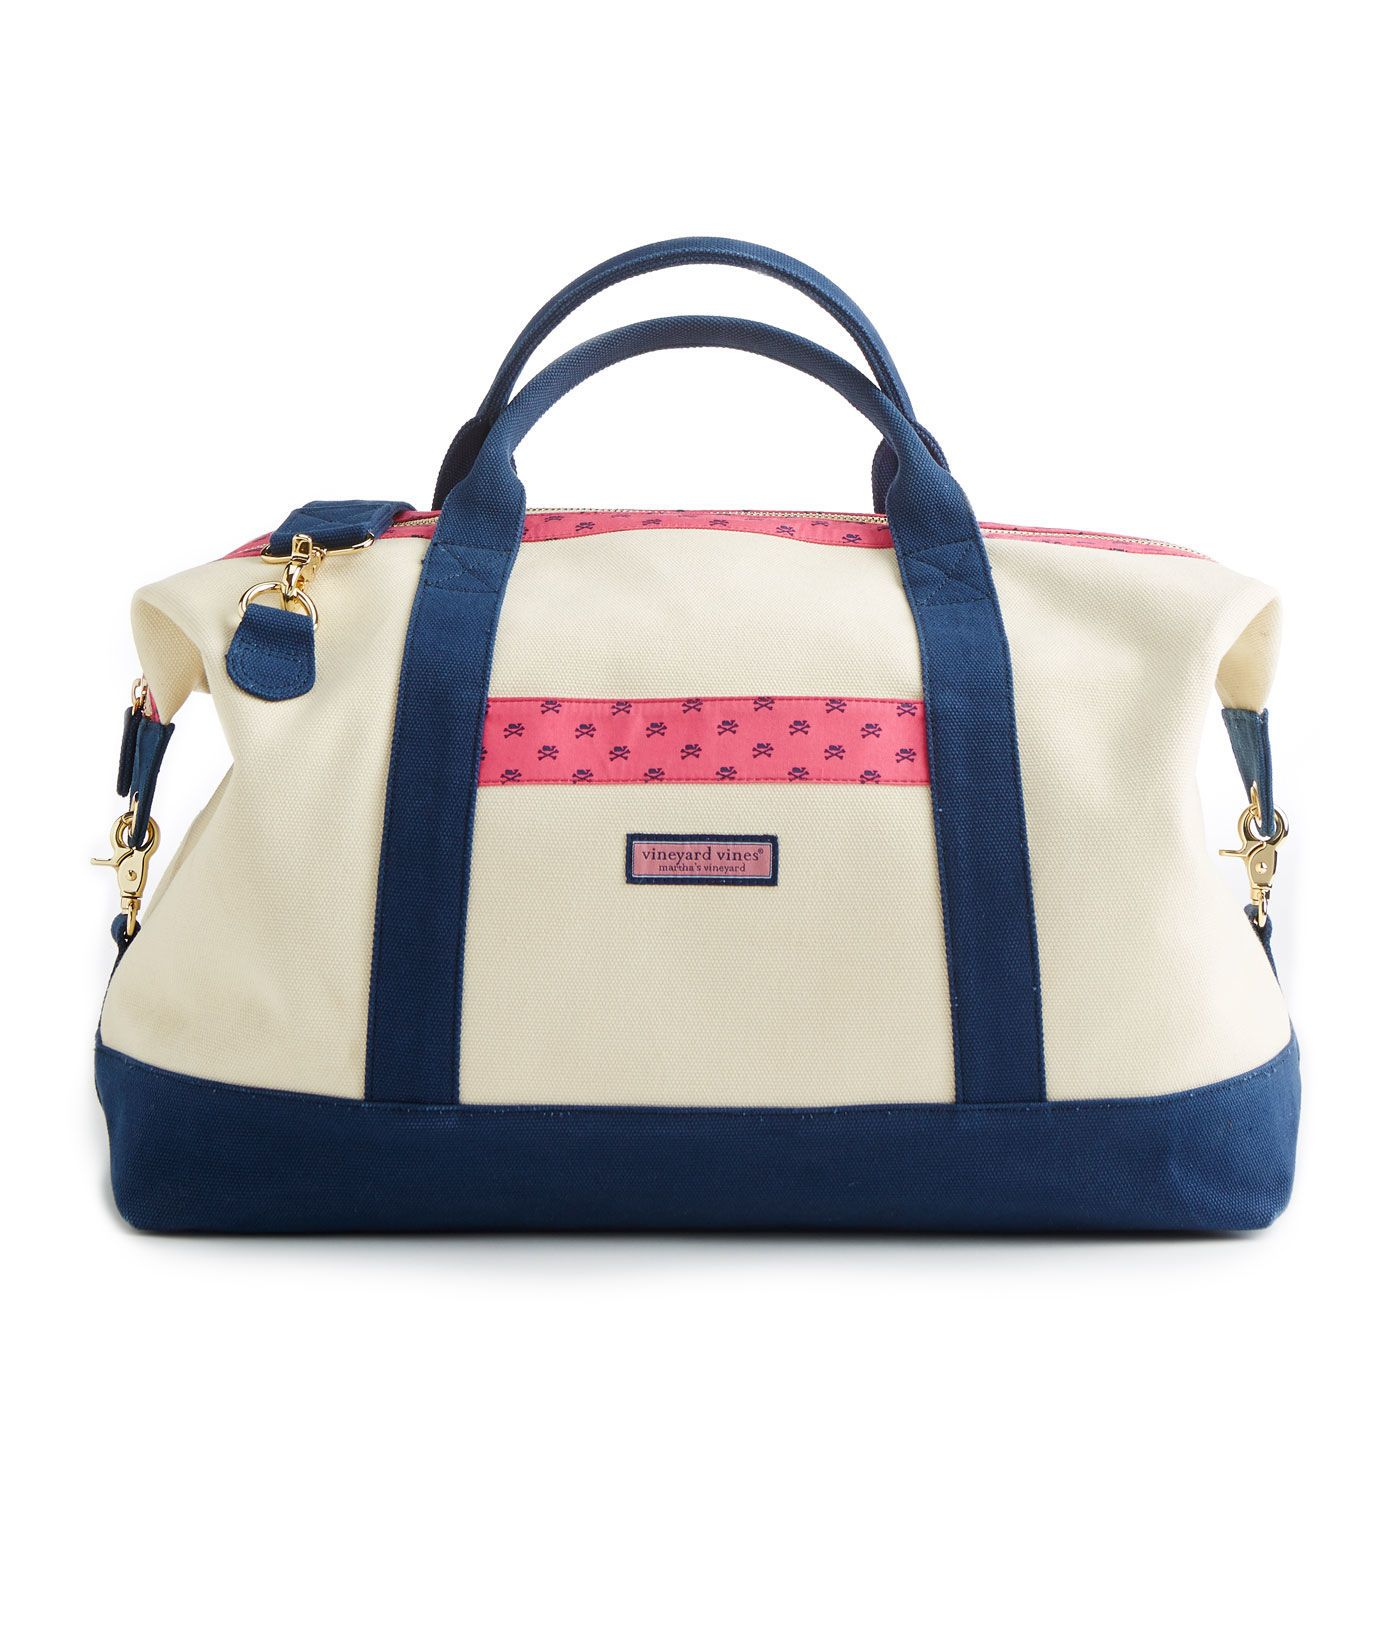 3d857e45d4 Shop Whale Crossbones Heritage Weekender Bag at vineyard vines ...